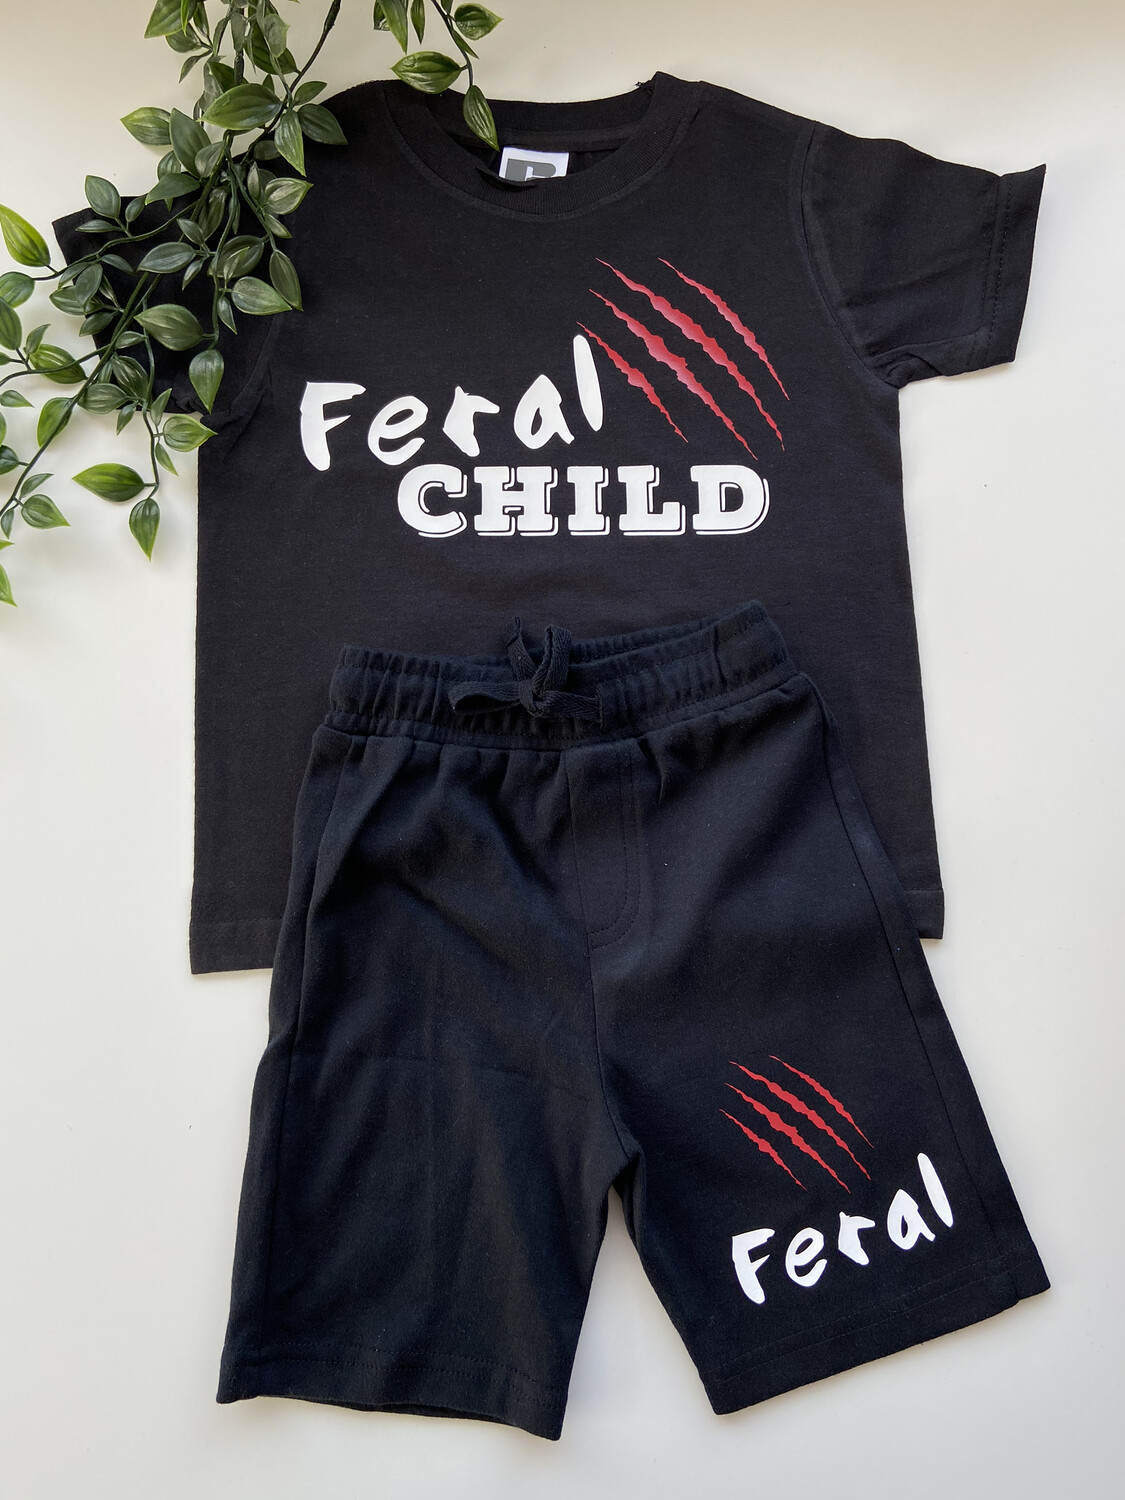 Feral Child T-shirt And Shorts Set